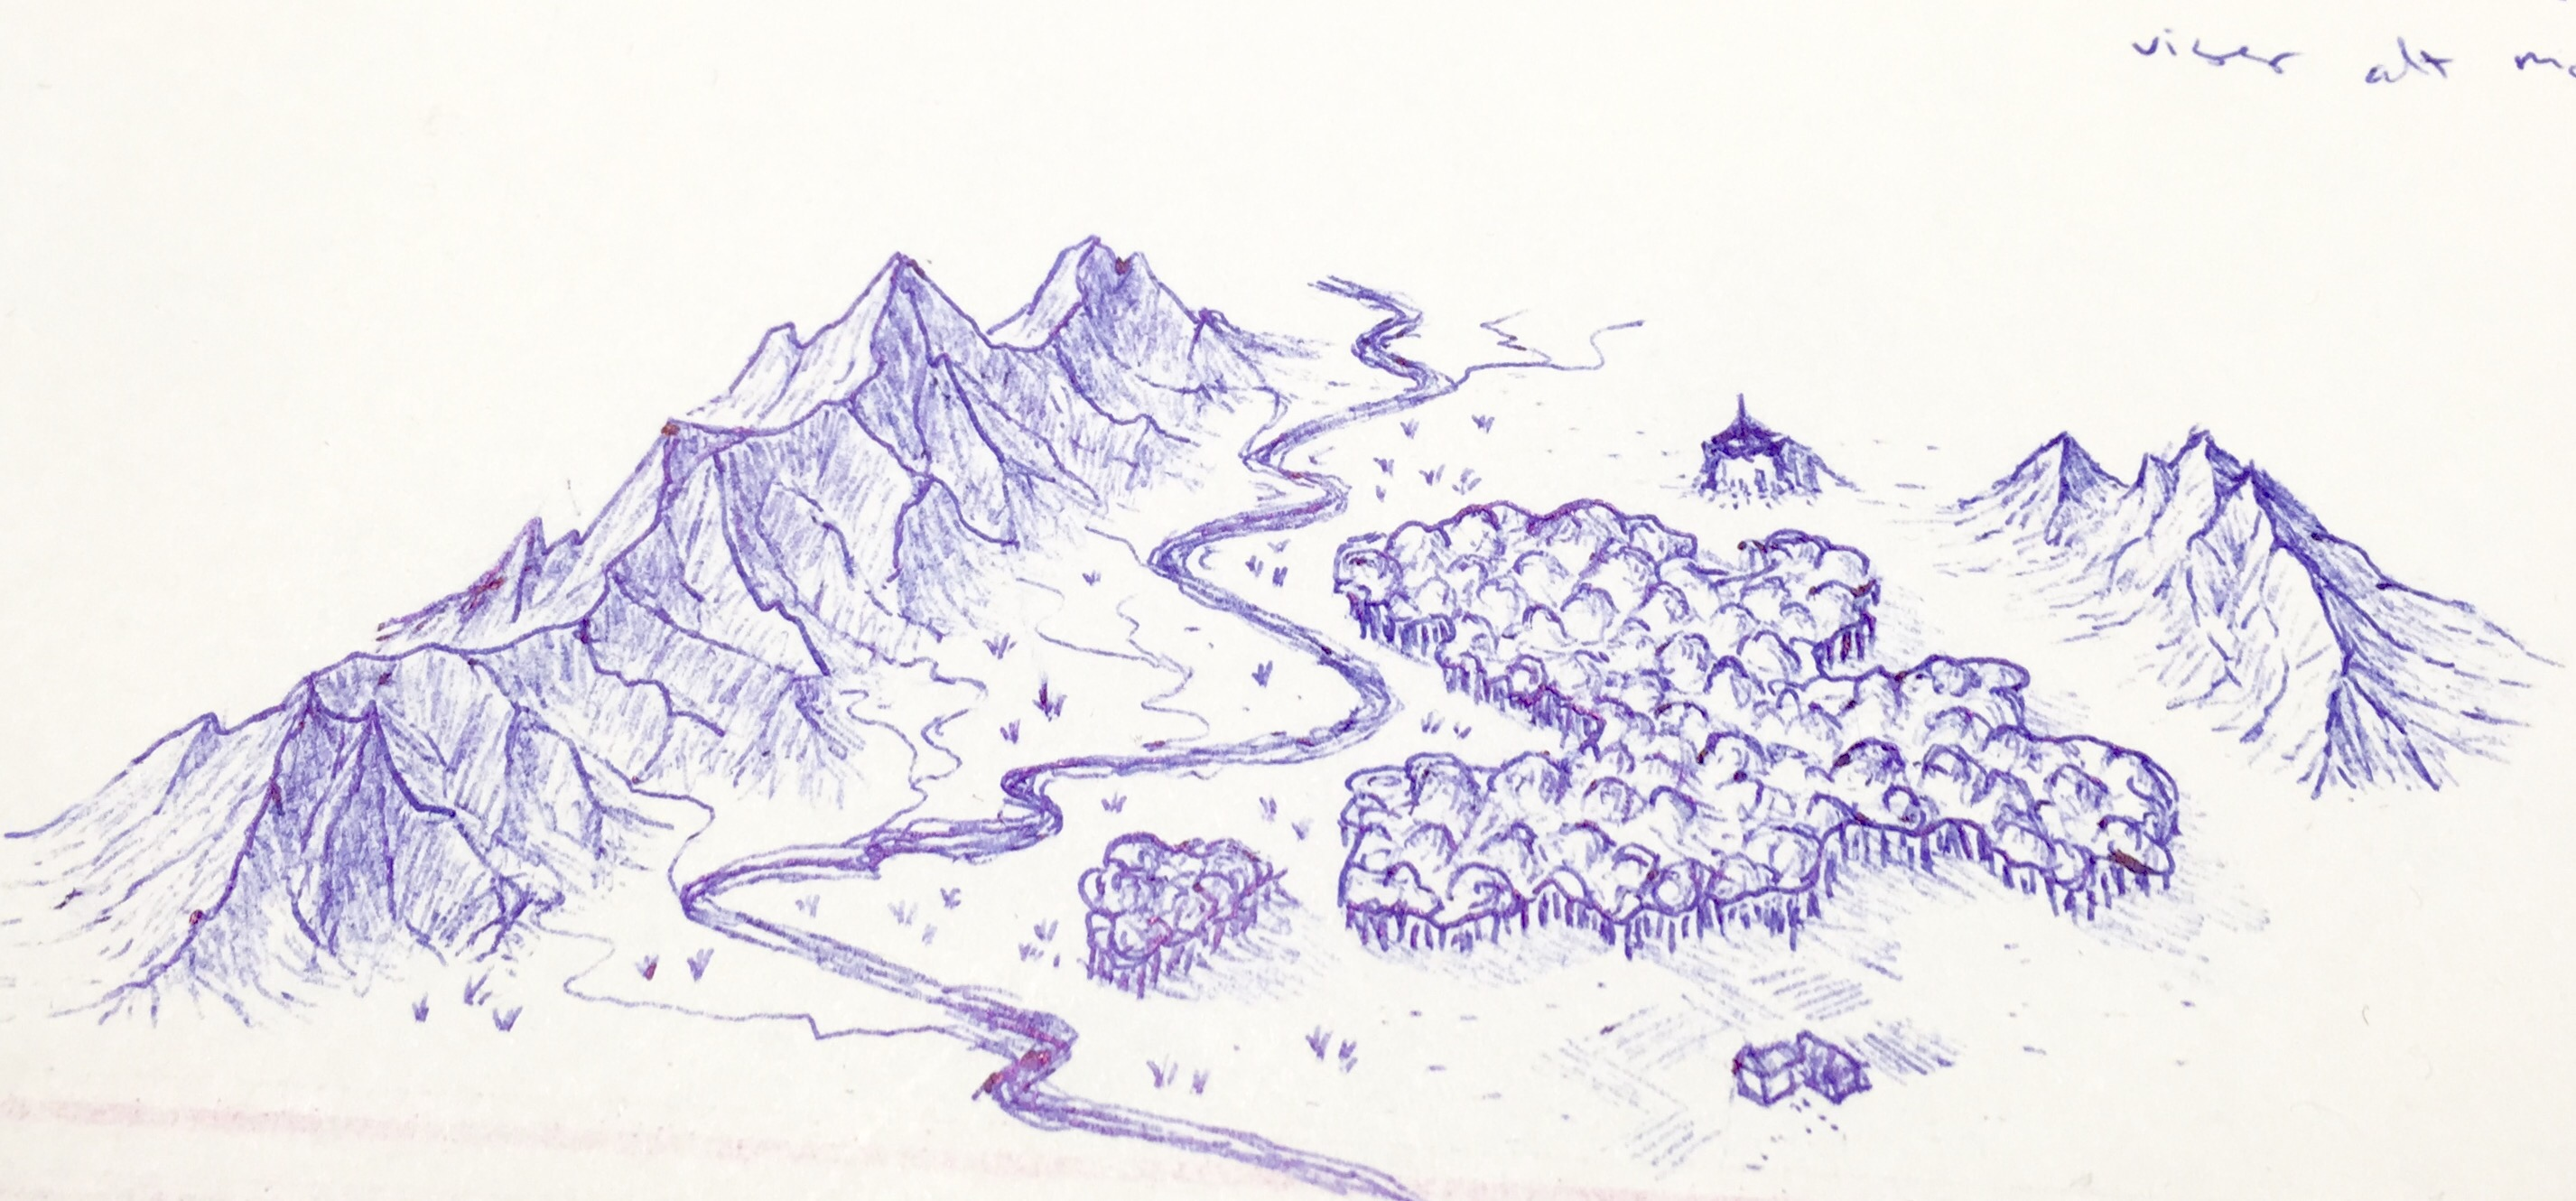 Valley sketch | Also, adventure on